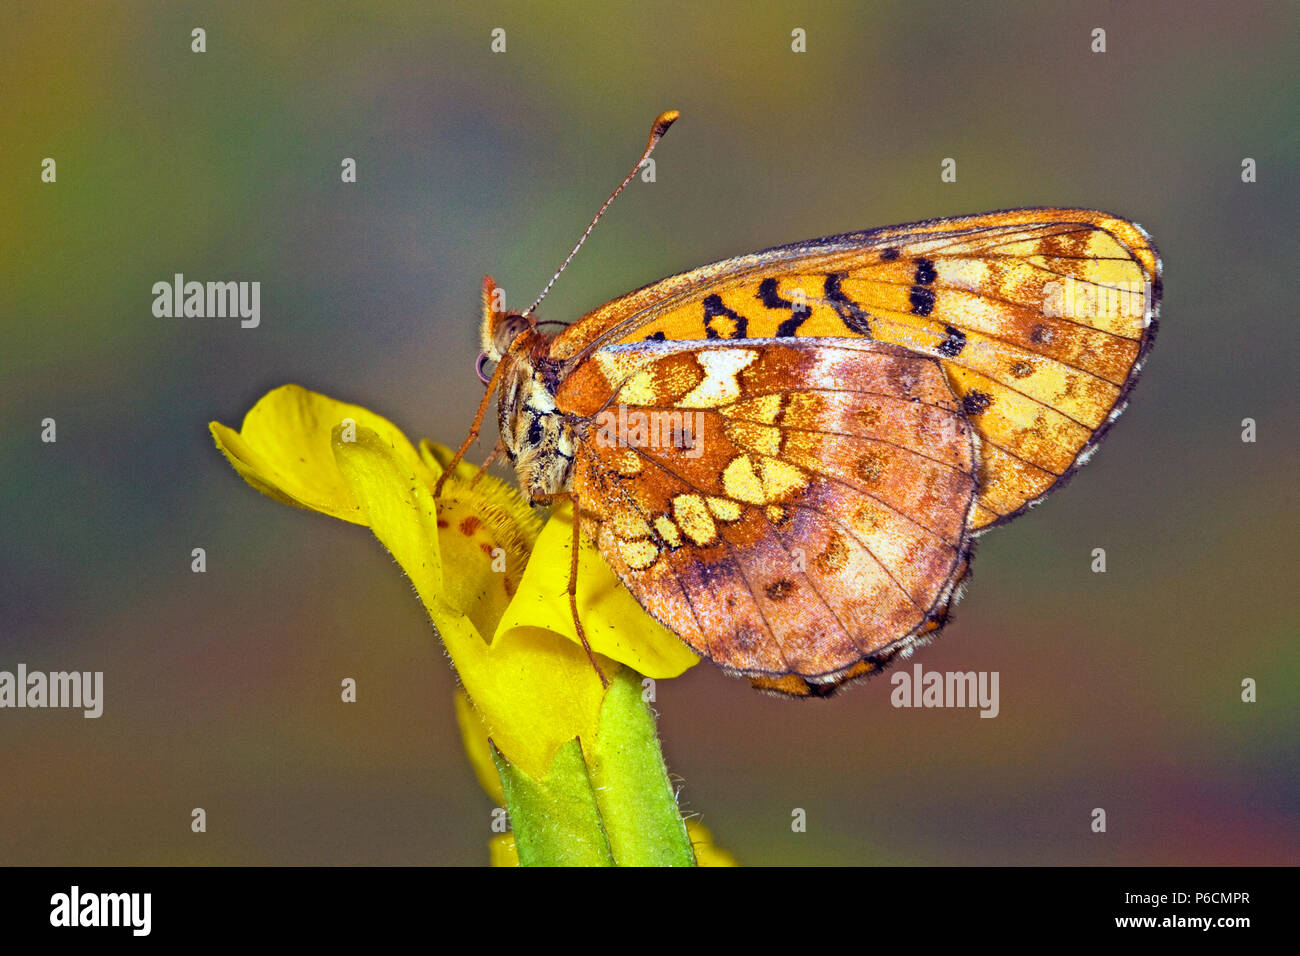 Ventral view of a western meadow fritilllary butterfly, Boloria epithore, along the Fall River in the Cascade Mountains of central Oregon. - Stock Image